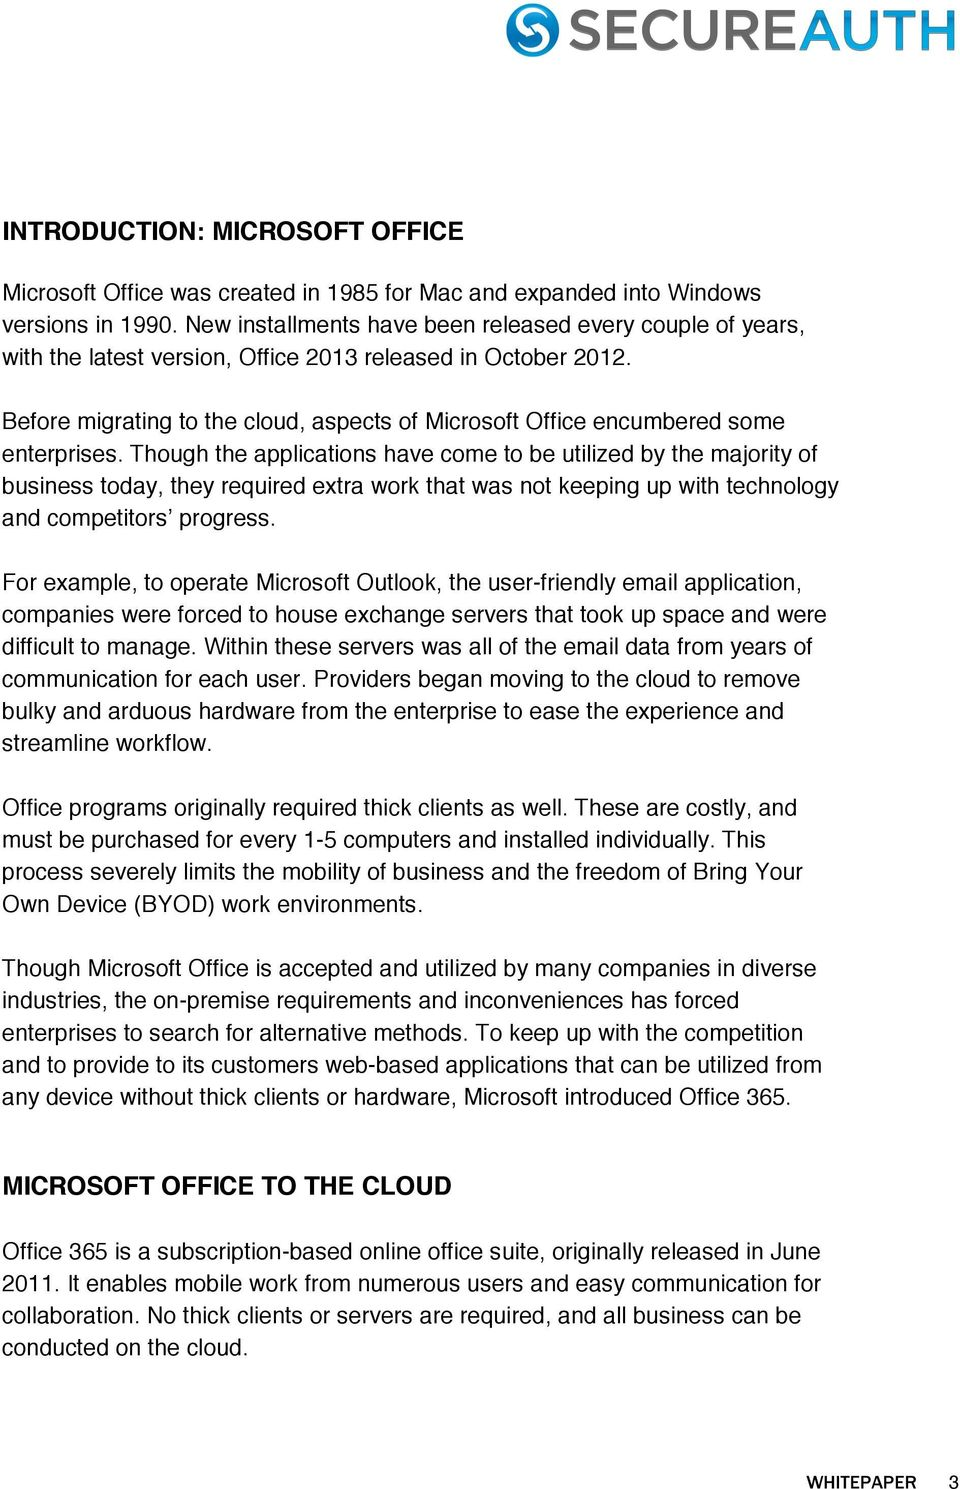 Before migrating to the cloud, aspects of Microsoft Office encumbered some enterprises.